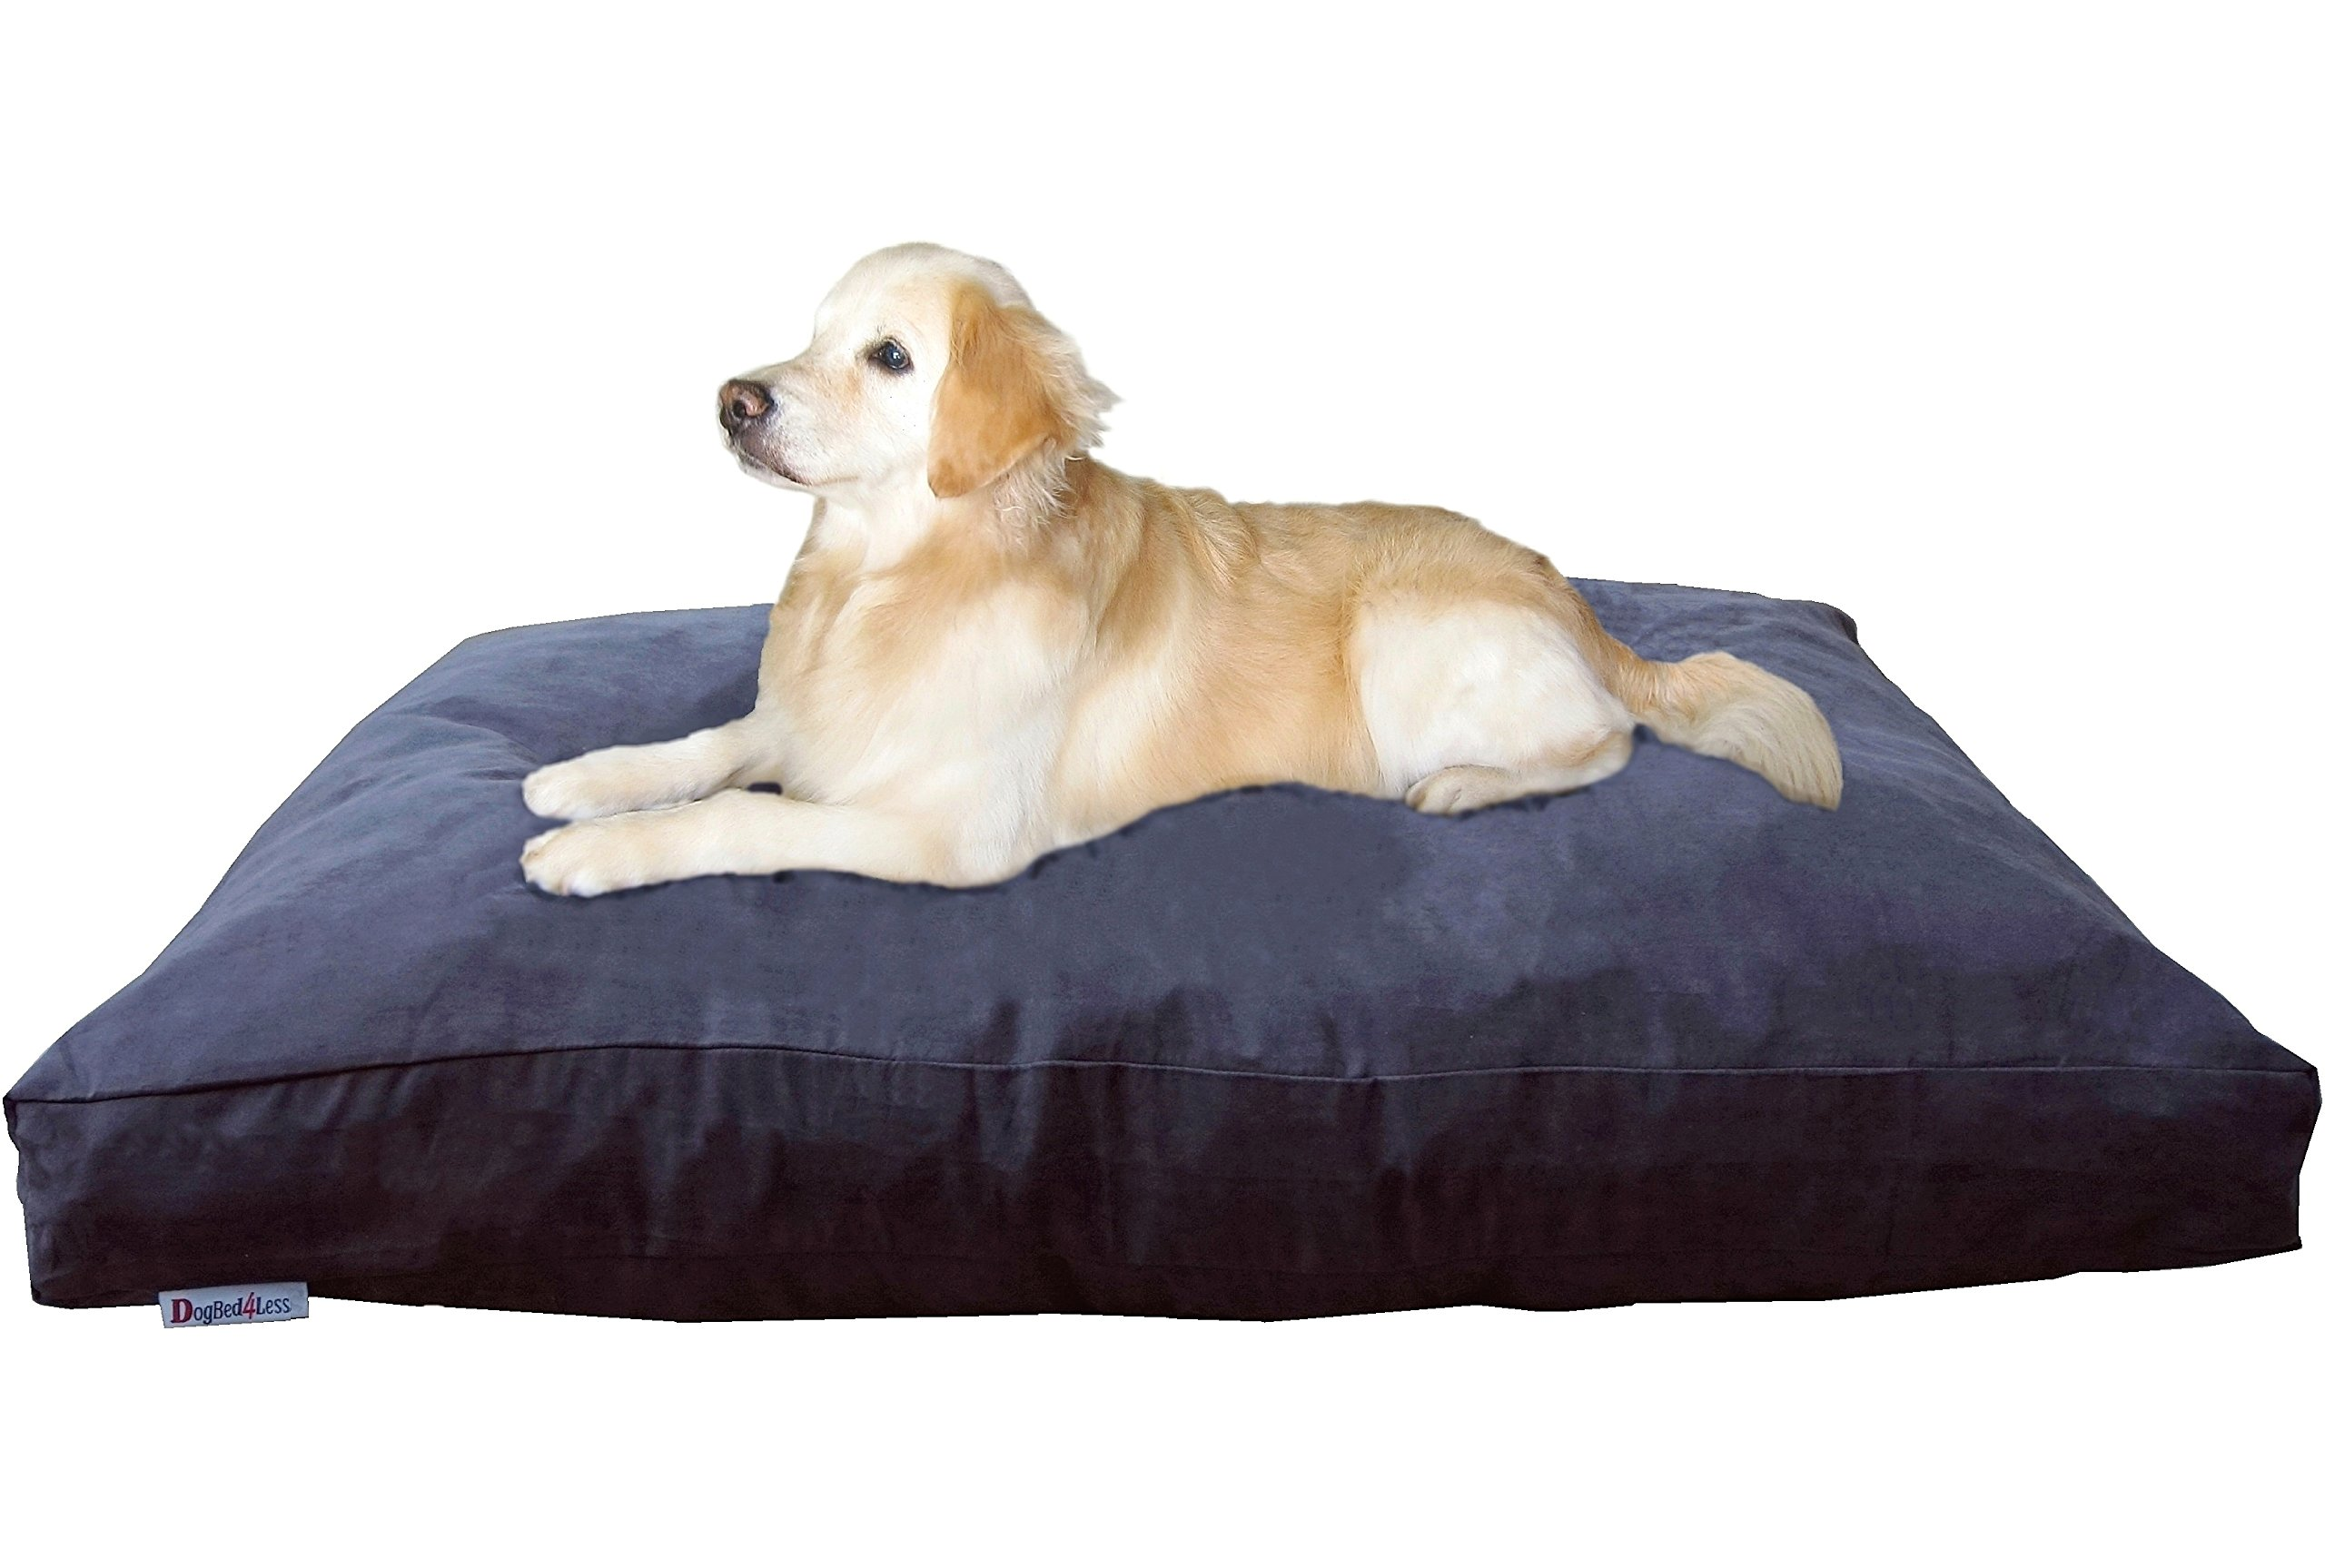 Dogbed4less Jumbo Extra Large Memory Foam Dog Bed Pillow with Waterproof Liner and Microsuede Cover for Big Dog 55X47 Inches, Espresso